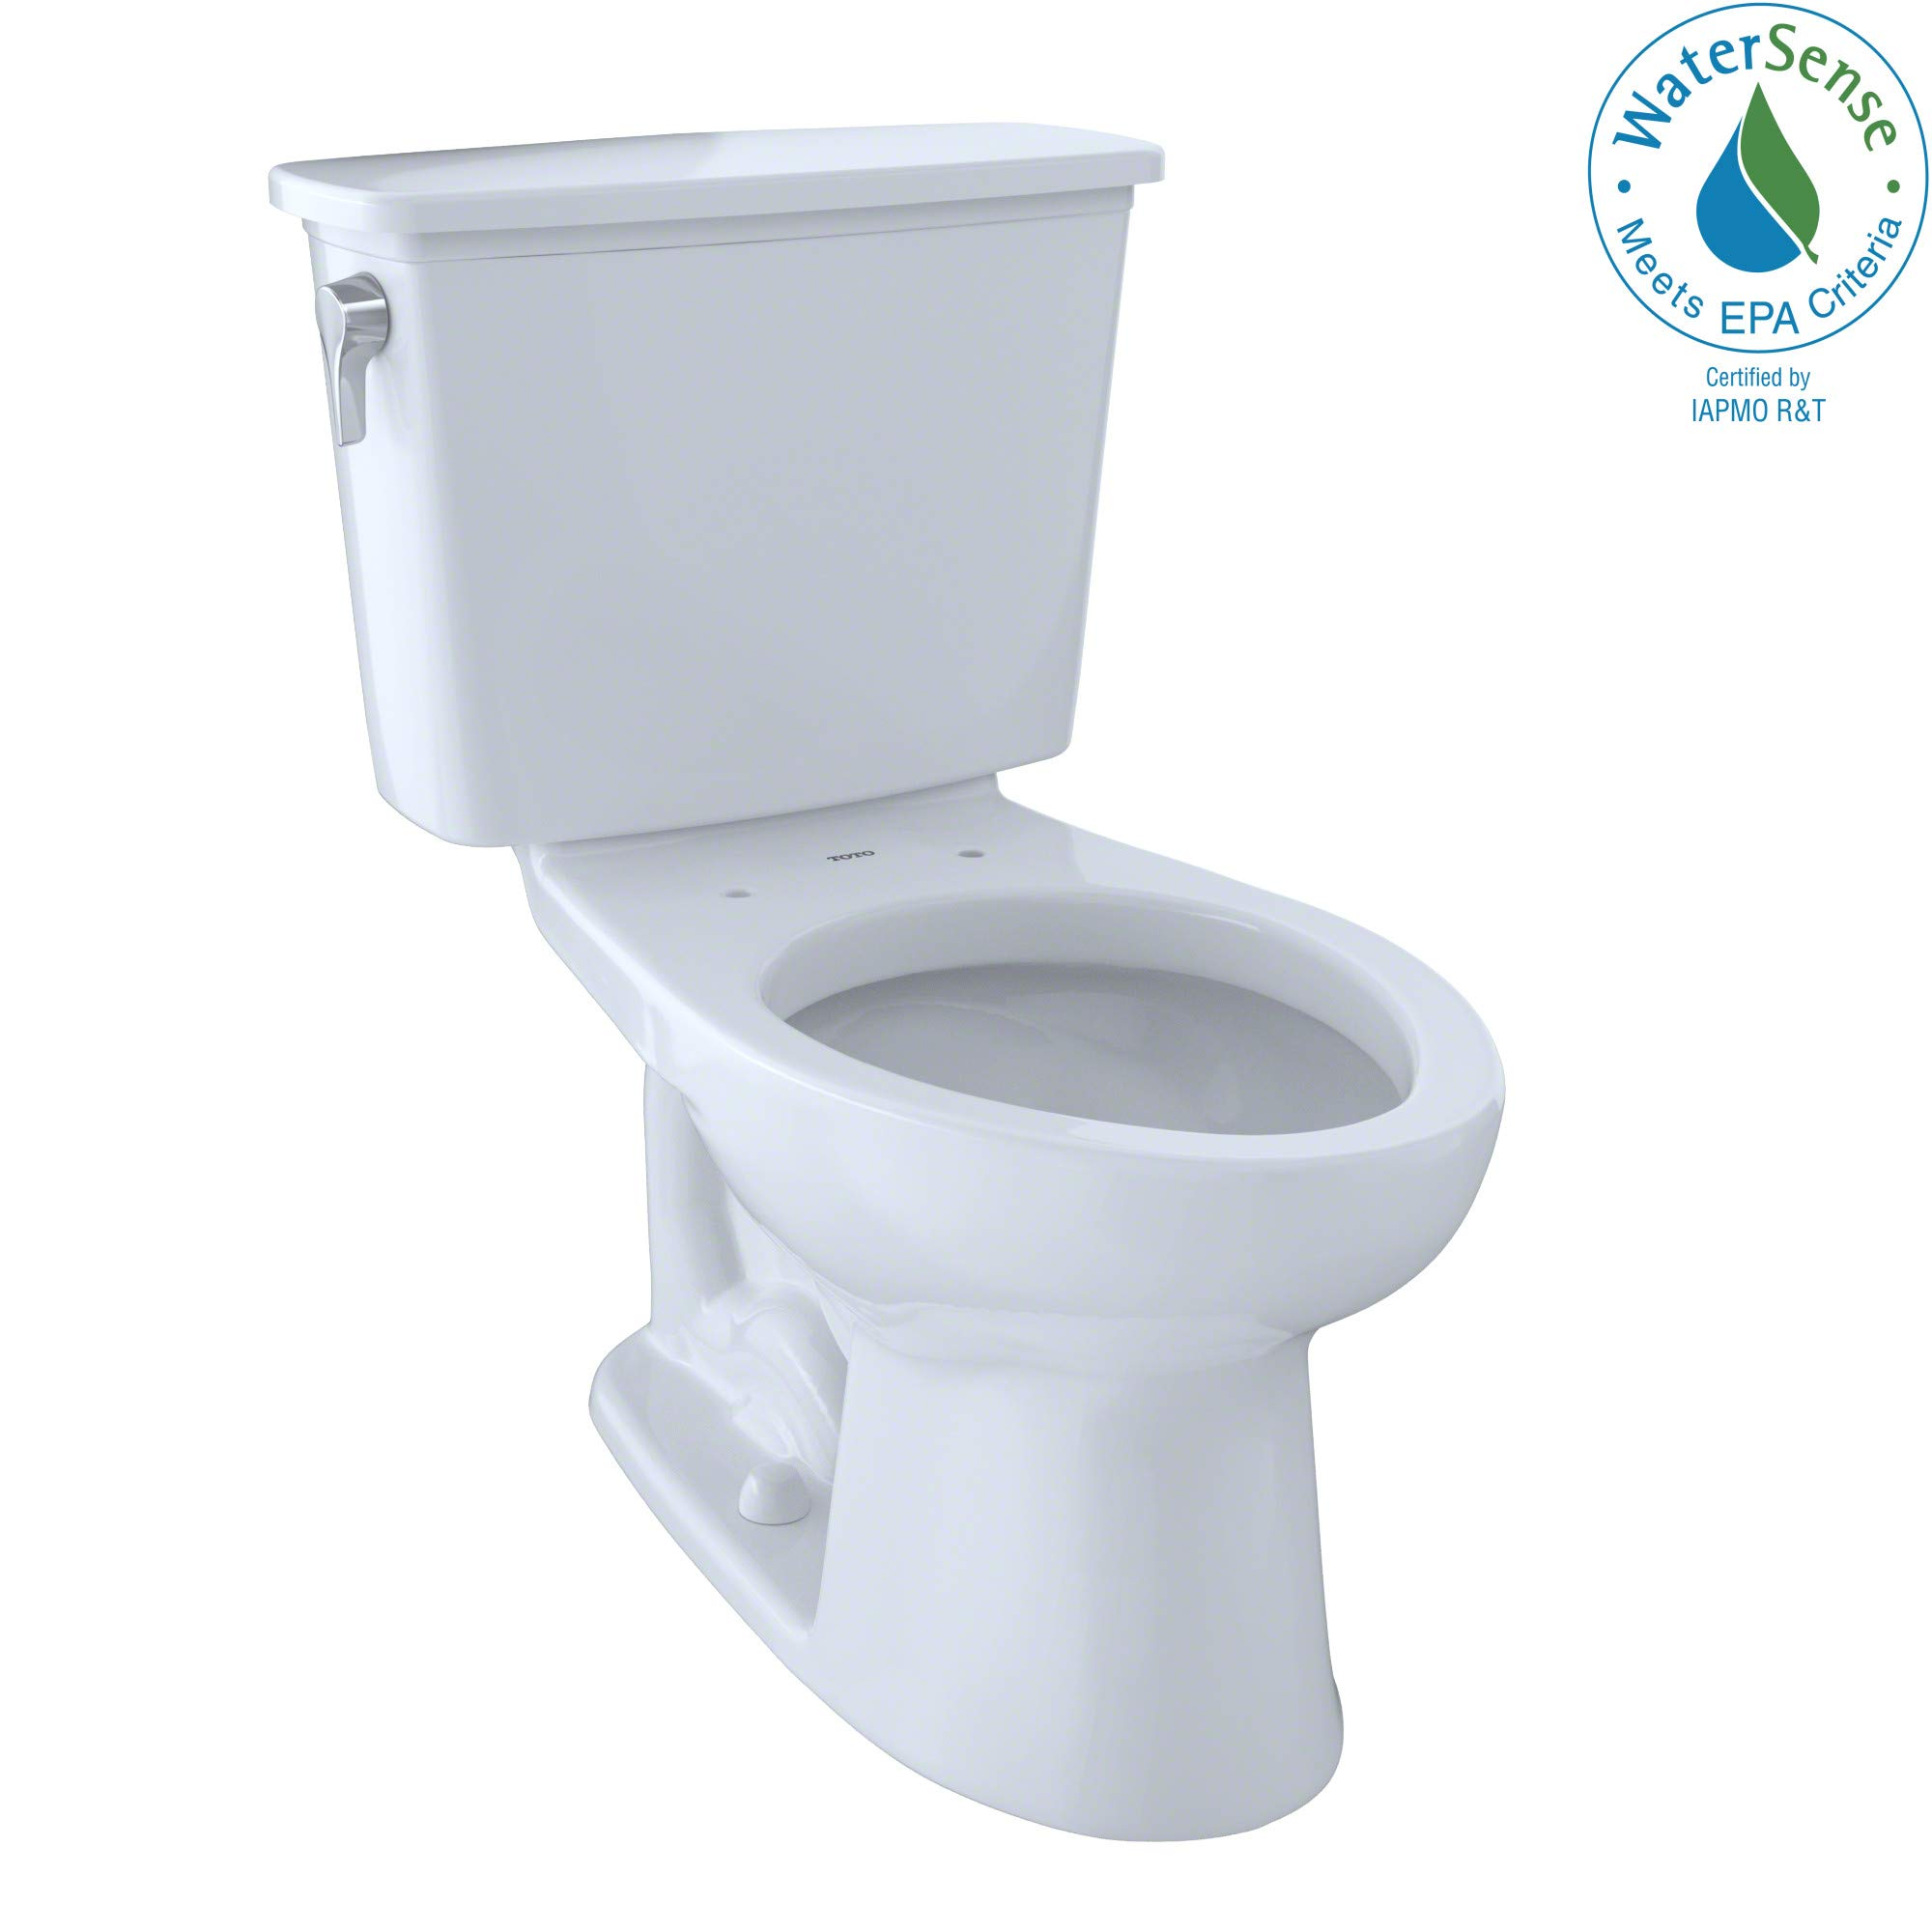 Toto CST744EGN#01 Eco-Drake Sanagloss Elongated Toilet, Cotton by TOTO